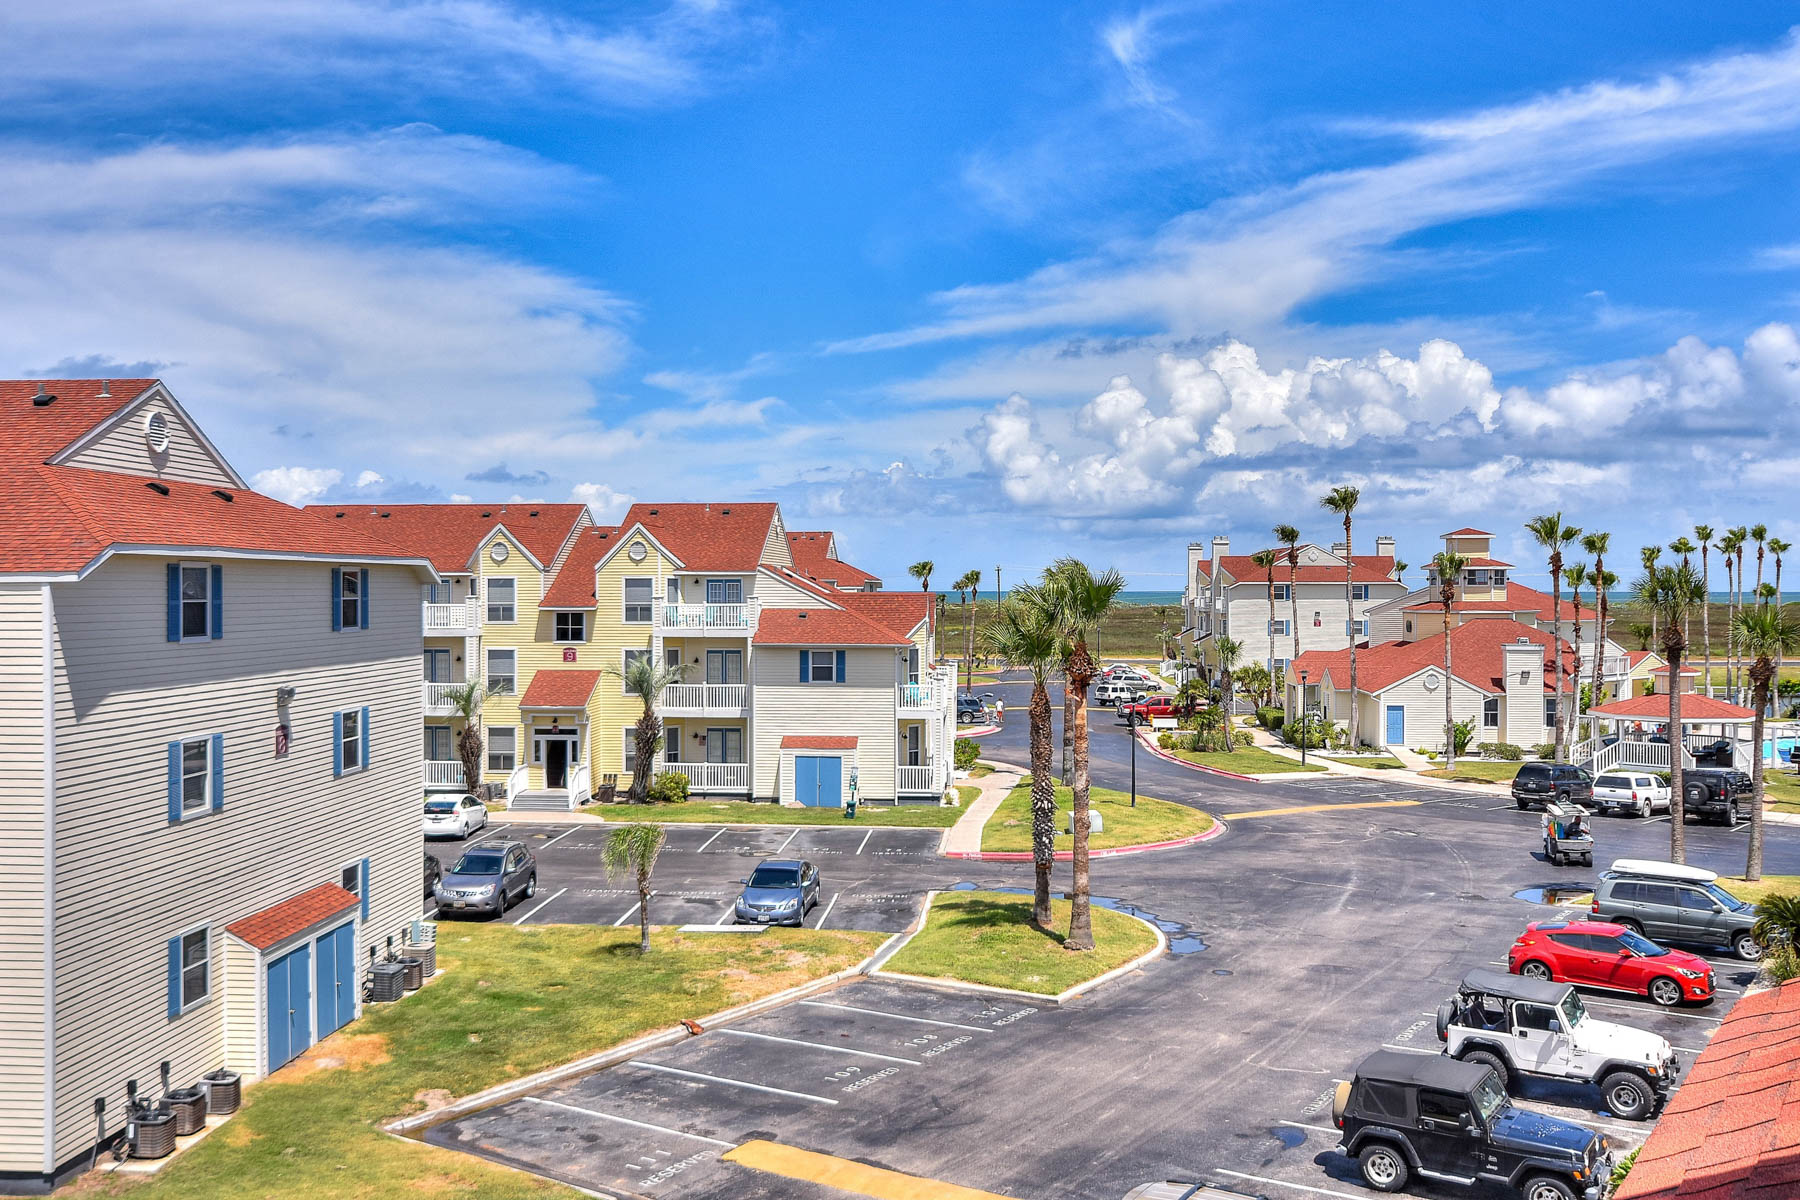 Condominium for Sale at Amazing opportunity at Beach Club Condos 14721 Whitecap Blvd 366 Corpus Christi, Texas 78418 United States